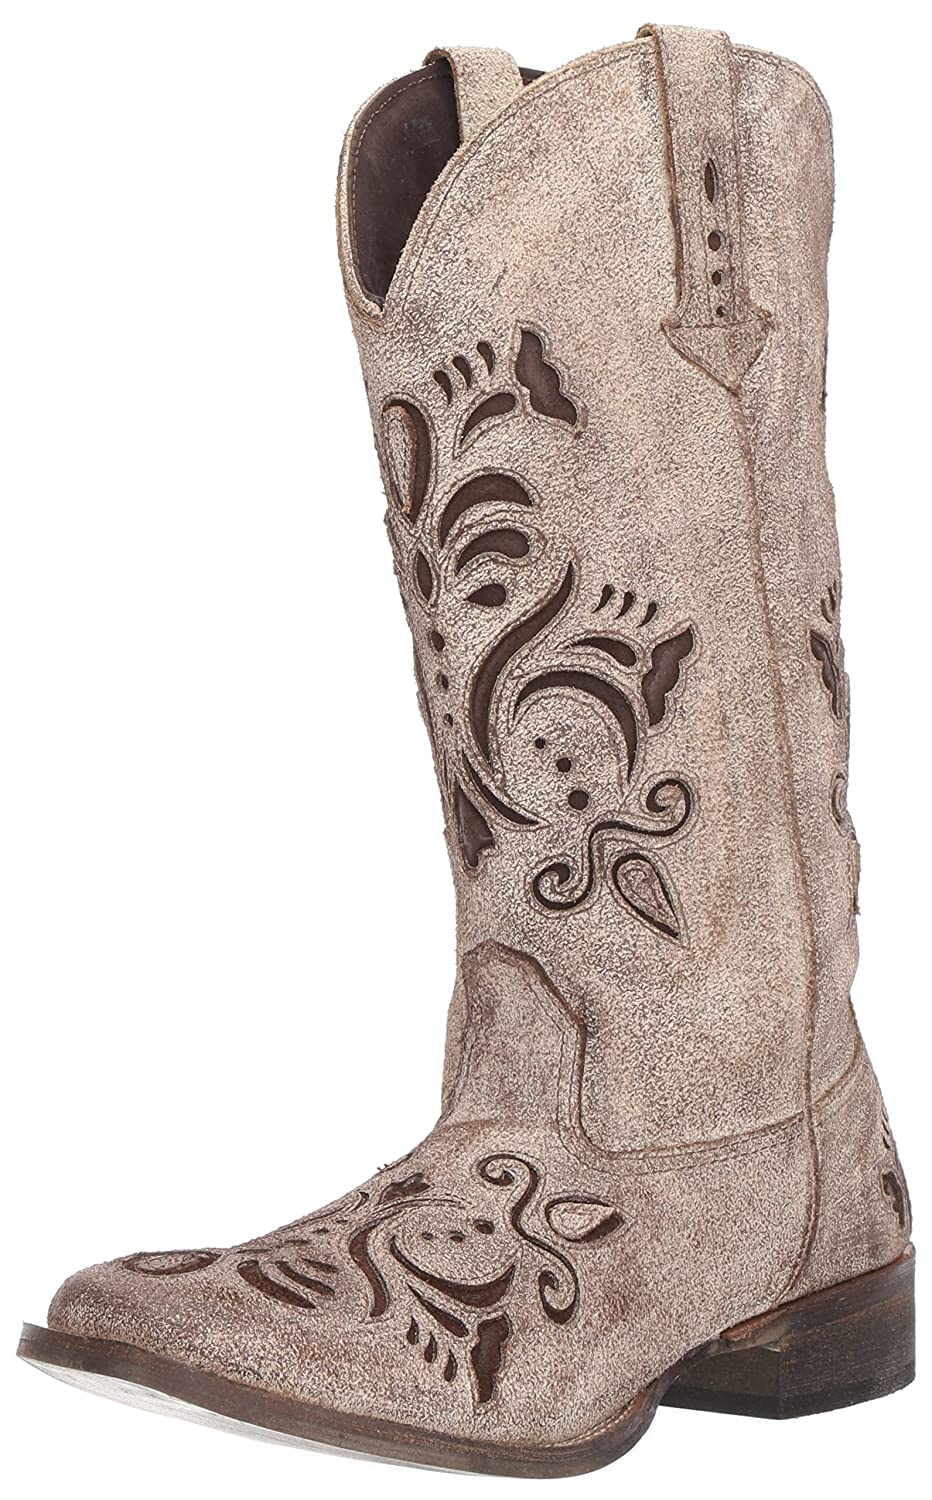 Roper Women's Belle Western Boot B06WWFZVD4 11 B(M) US|Tan